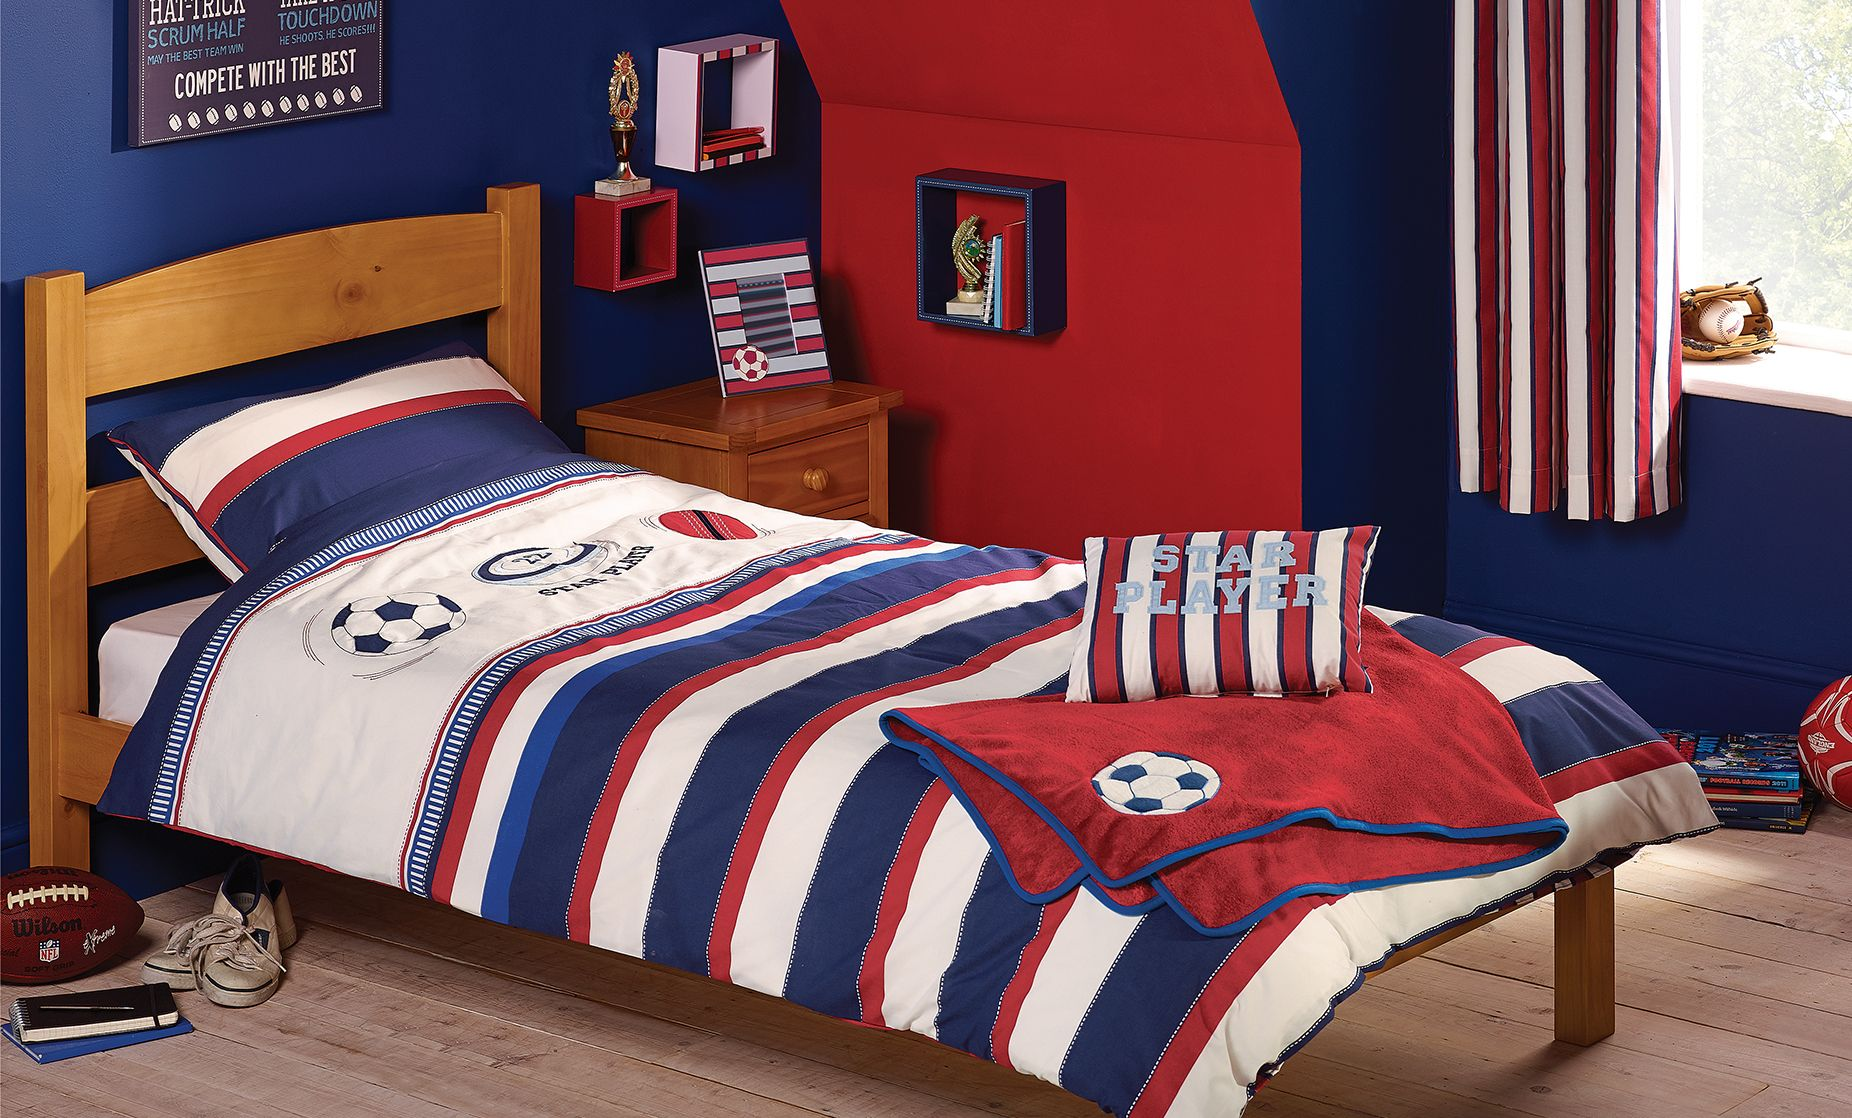 Varsity Sports Childrens Bedroom